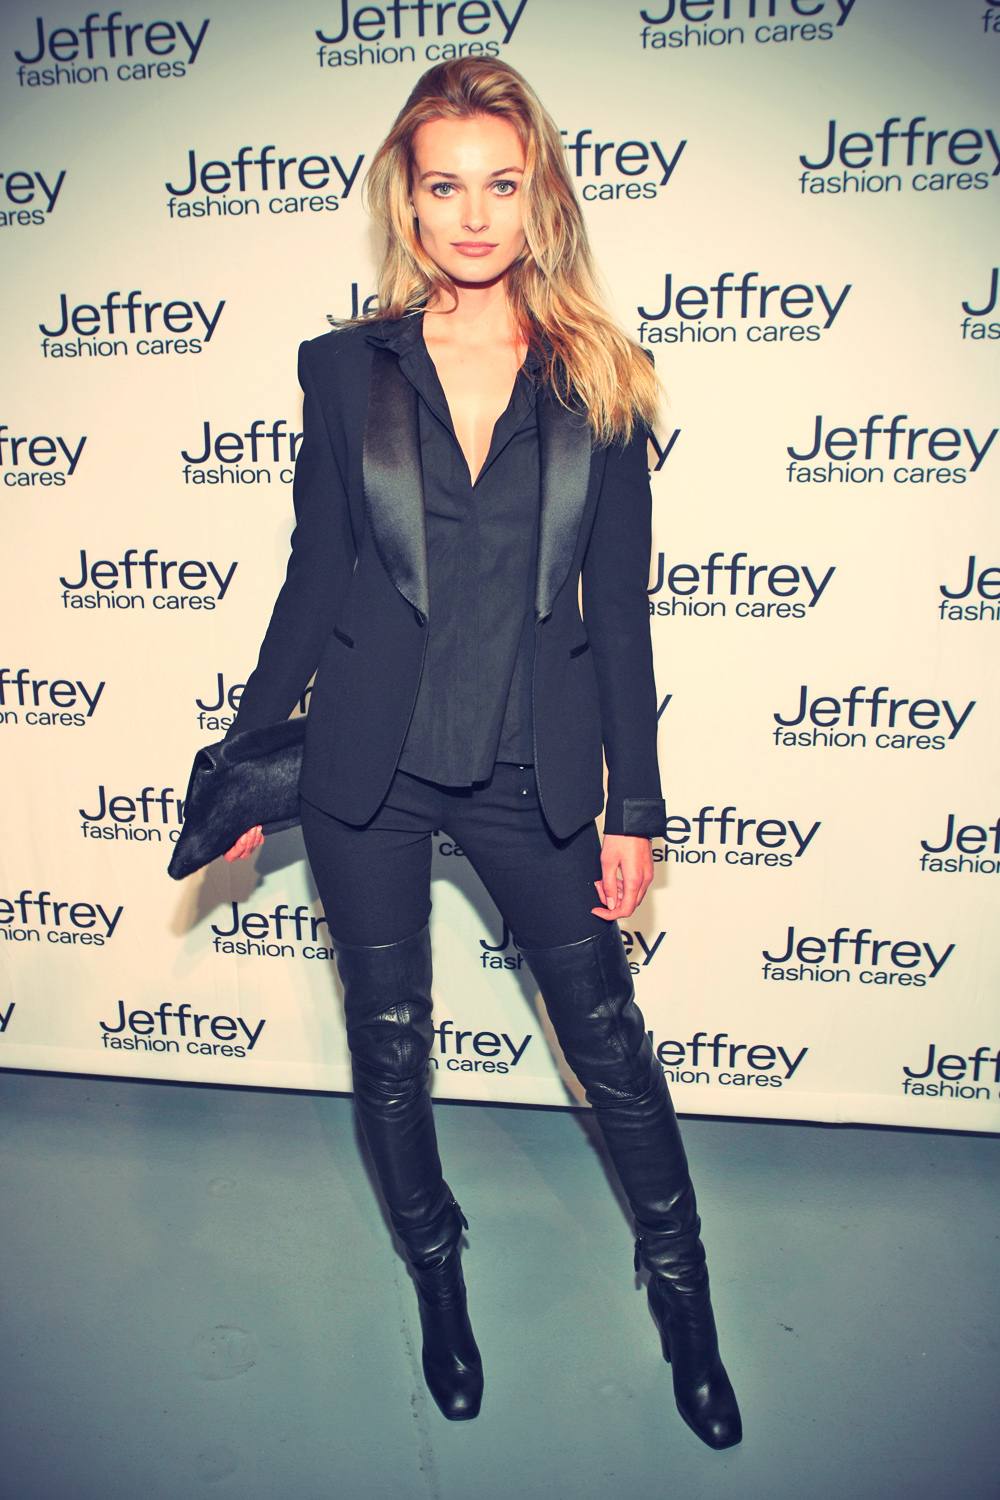 Edita Vilkeviciute at Jeffrey Fashion Cares